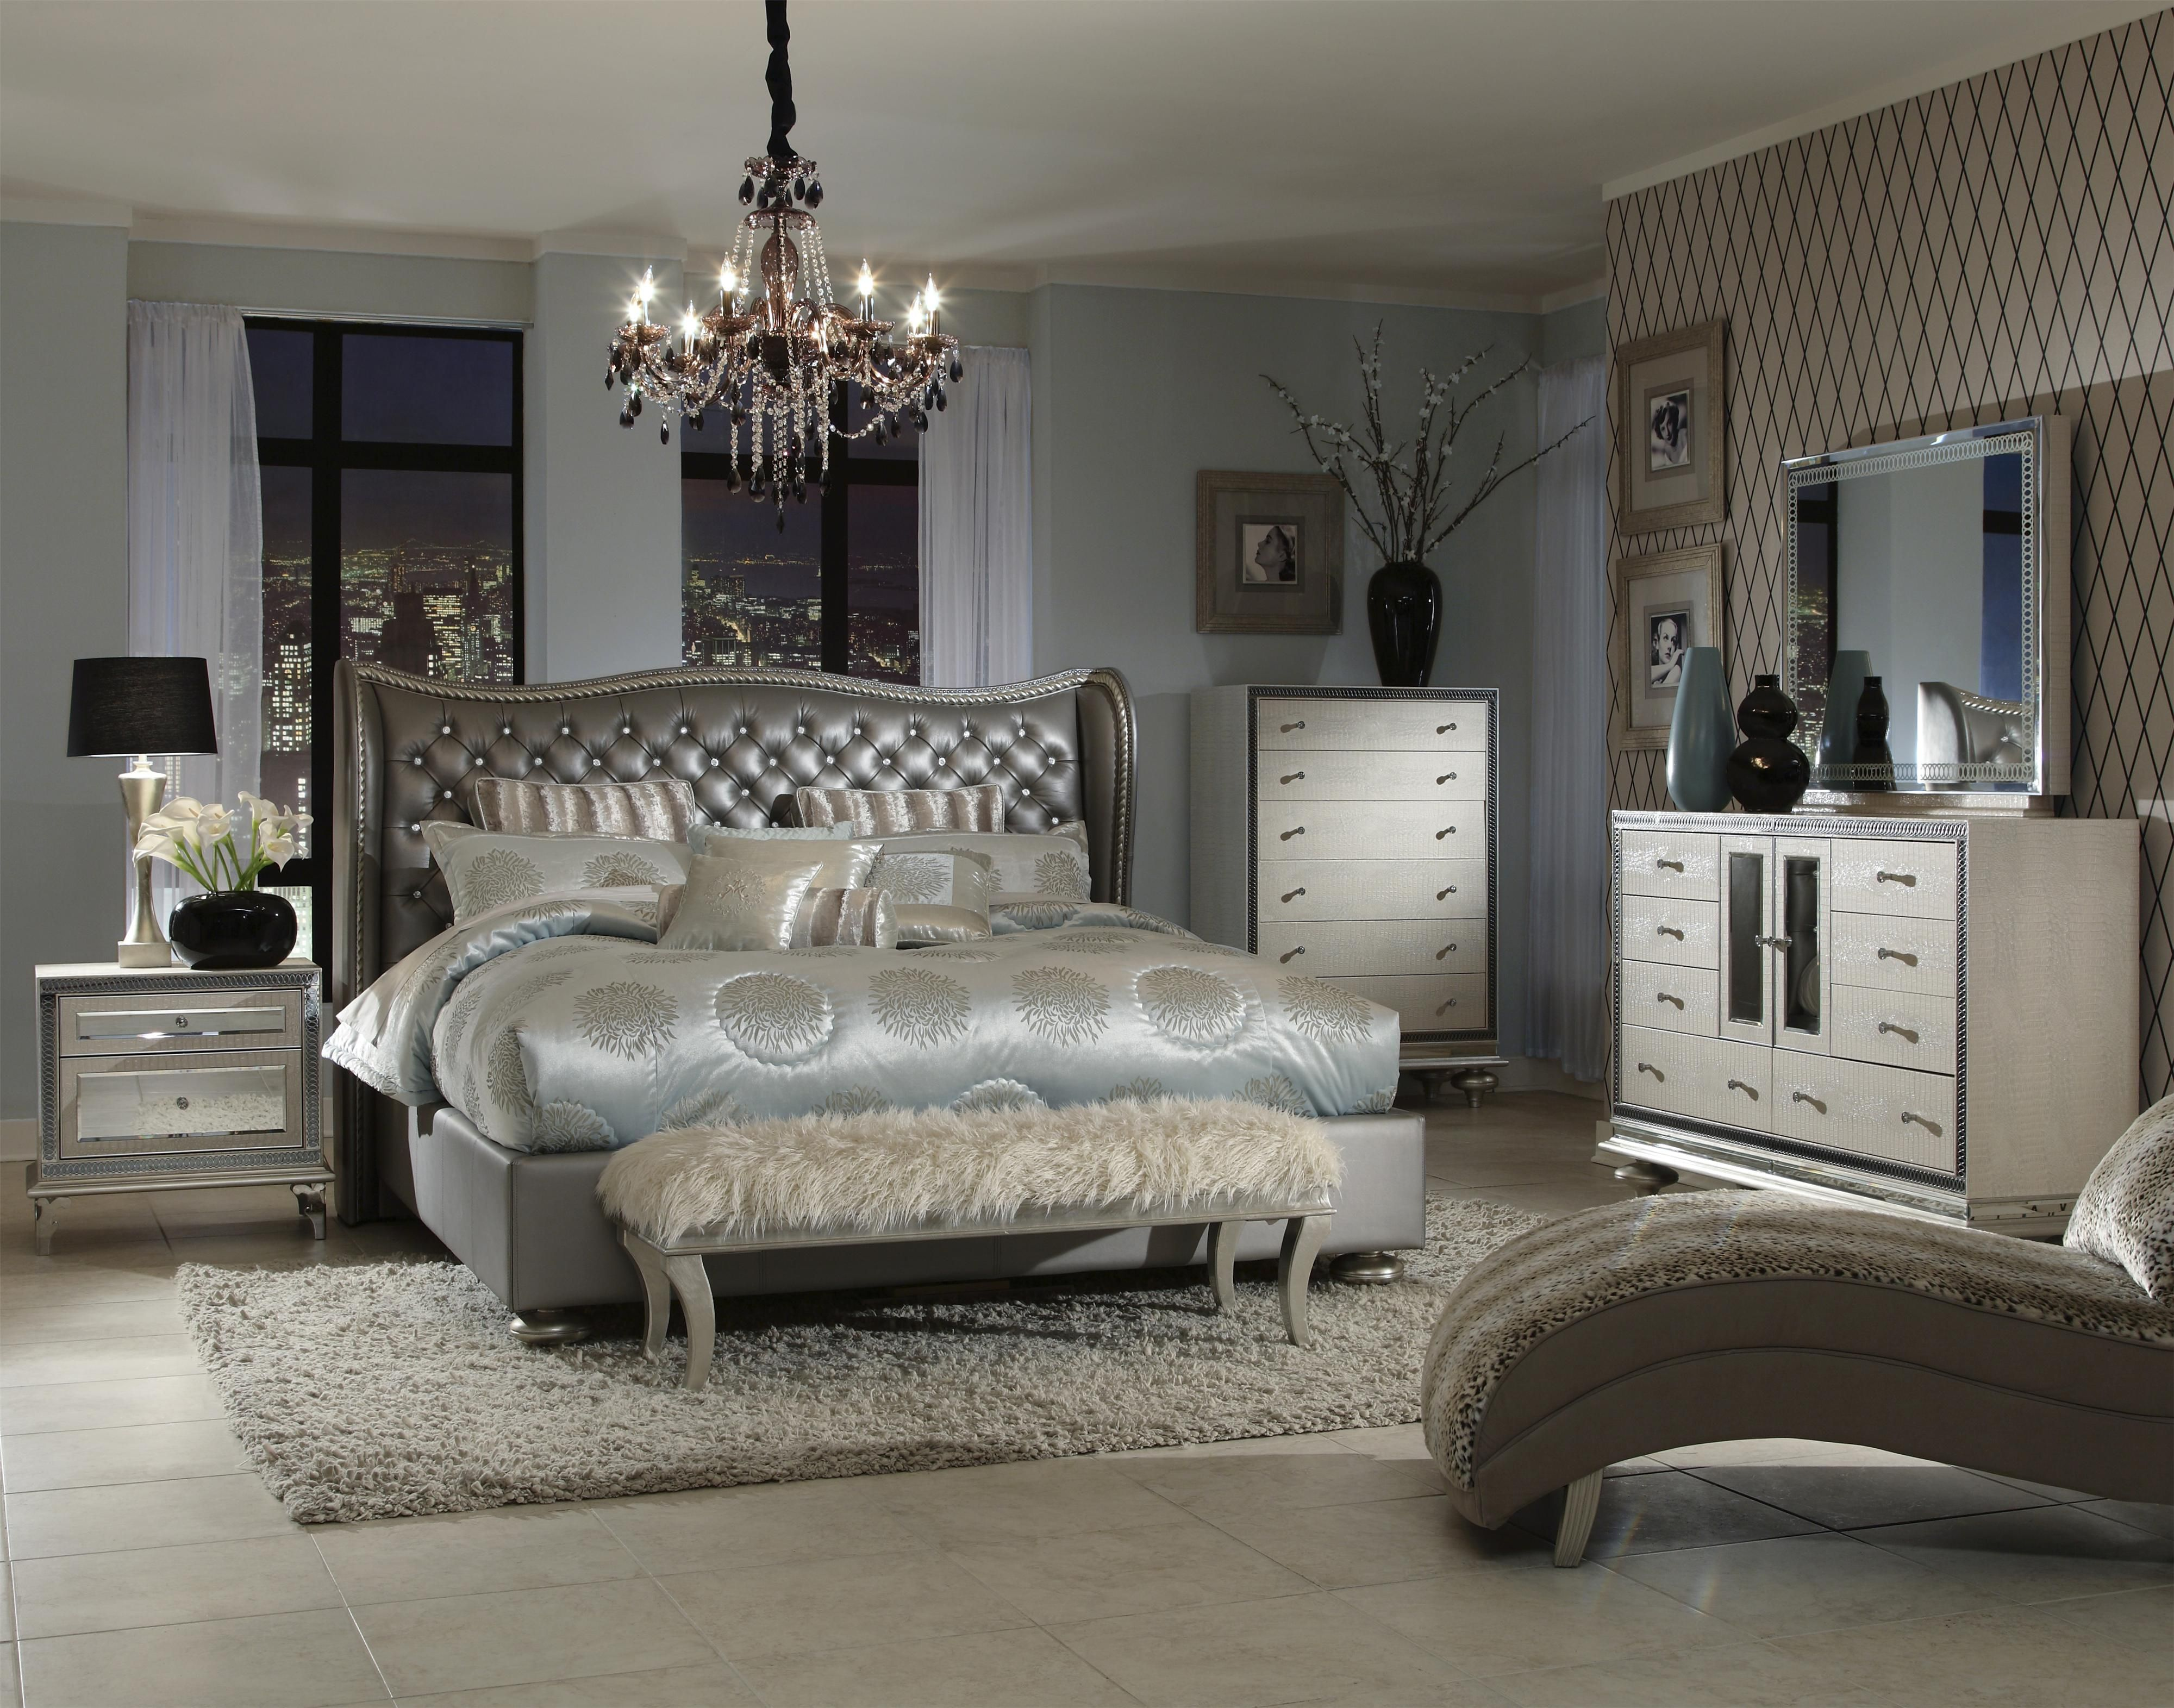 Marlo Furniture Living Room Marlo Furniture Bedroom Sets Home Design Ideas A1houstoncom